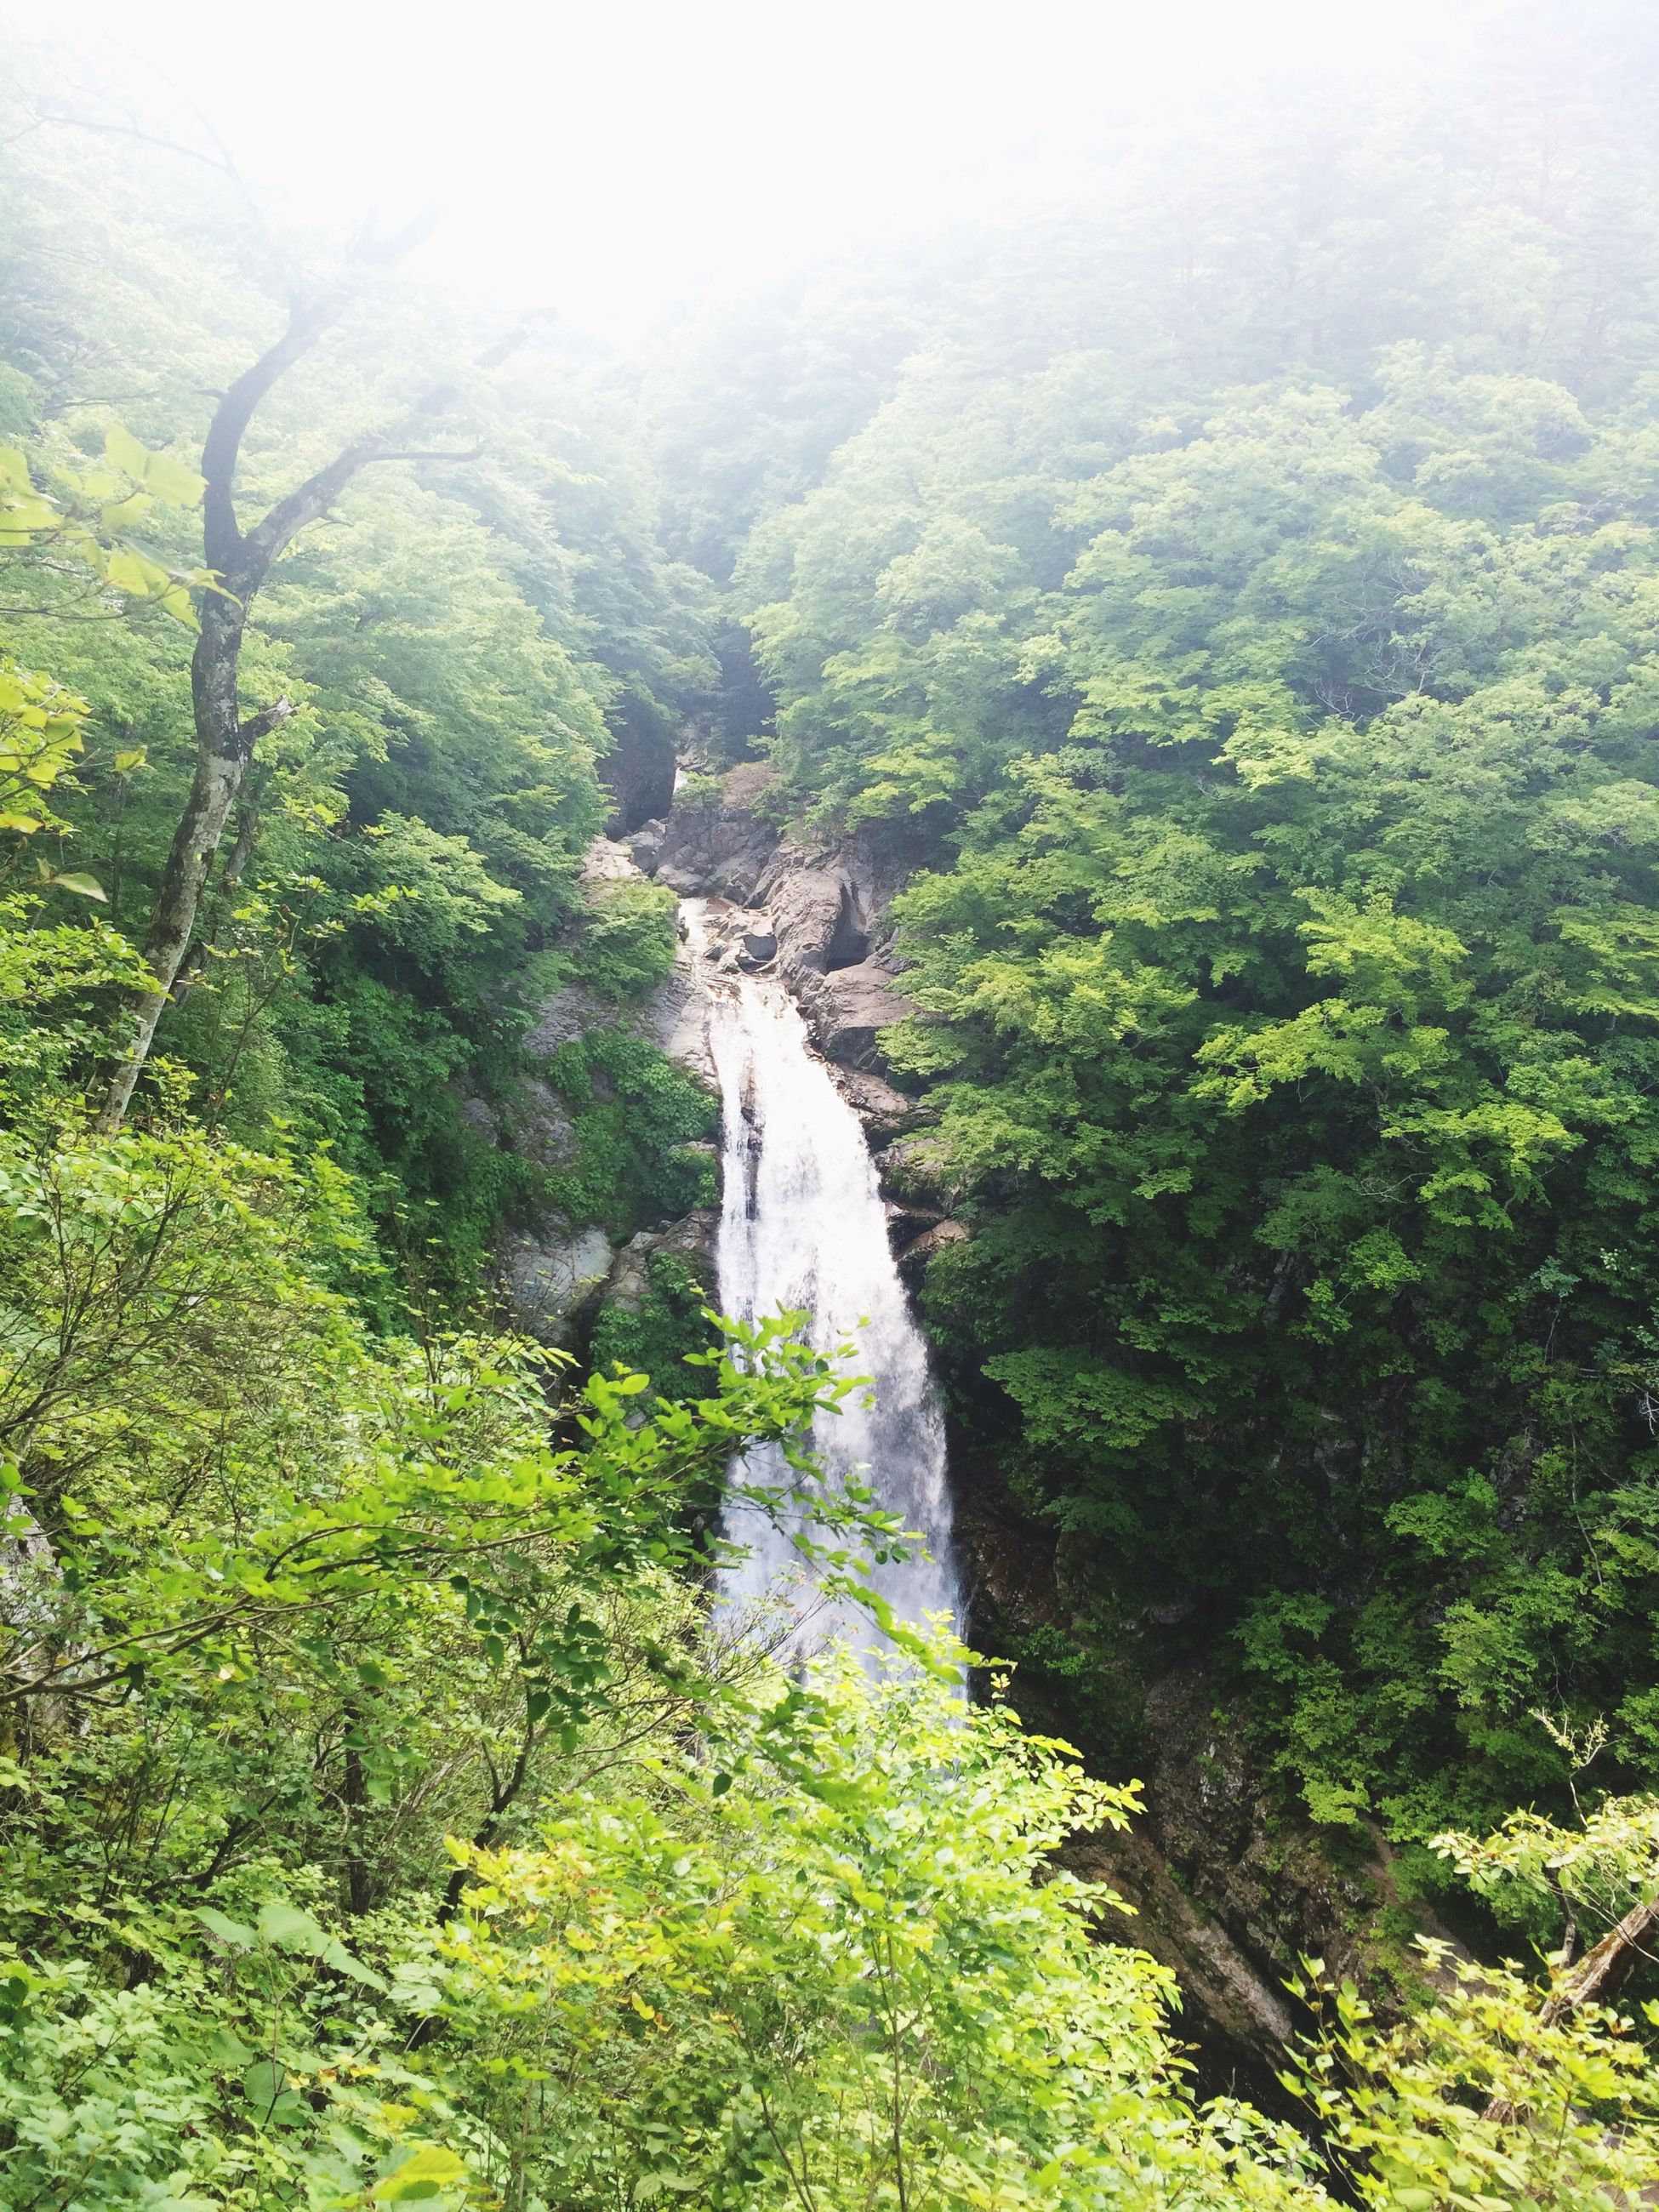 green color, beauty in nature, scenics, water, tree, nature, tranquil scene, tranquility, lush foliage, forest, growth, waterfall, idyllic, non-urban scene, plant, landscape, green, day, mountain, high angle view